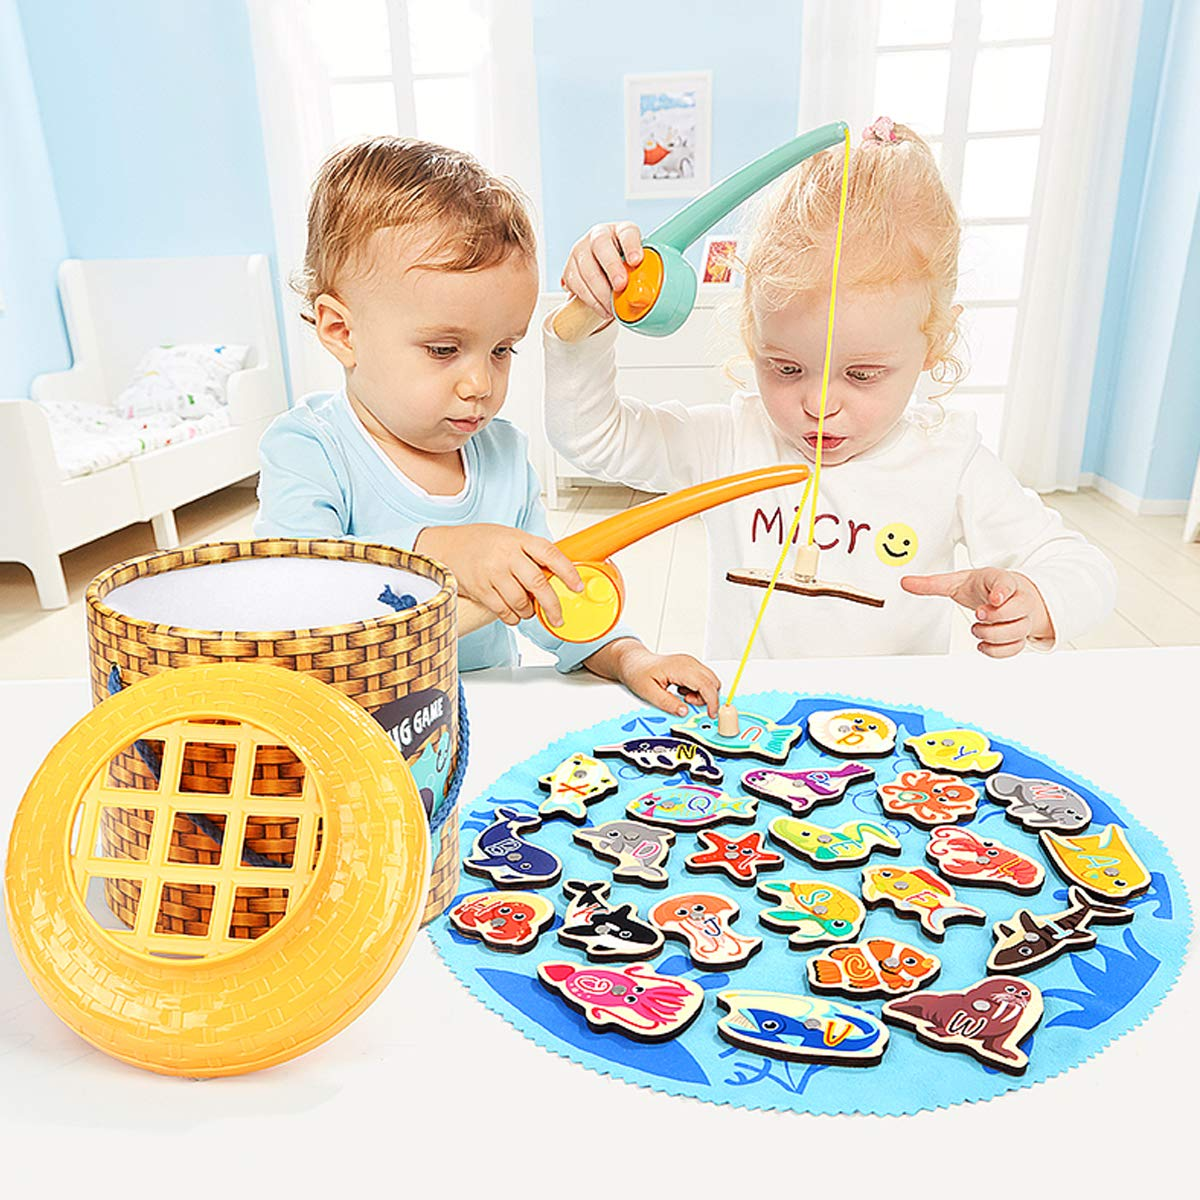 Aitey Magnetic Fishing Game Toddler Toys for 2 3 4 Year Old Boys Girls 2 Player Fishing Poles Set 26pcs Wooden Ocean Animal with Alphabet